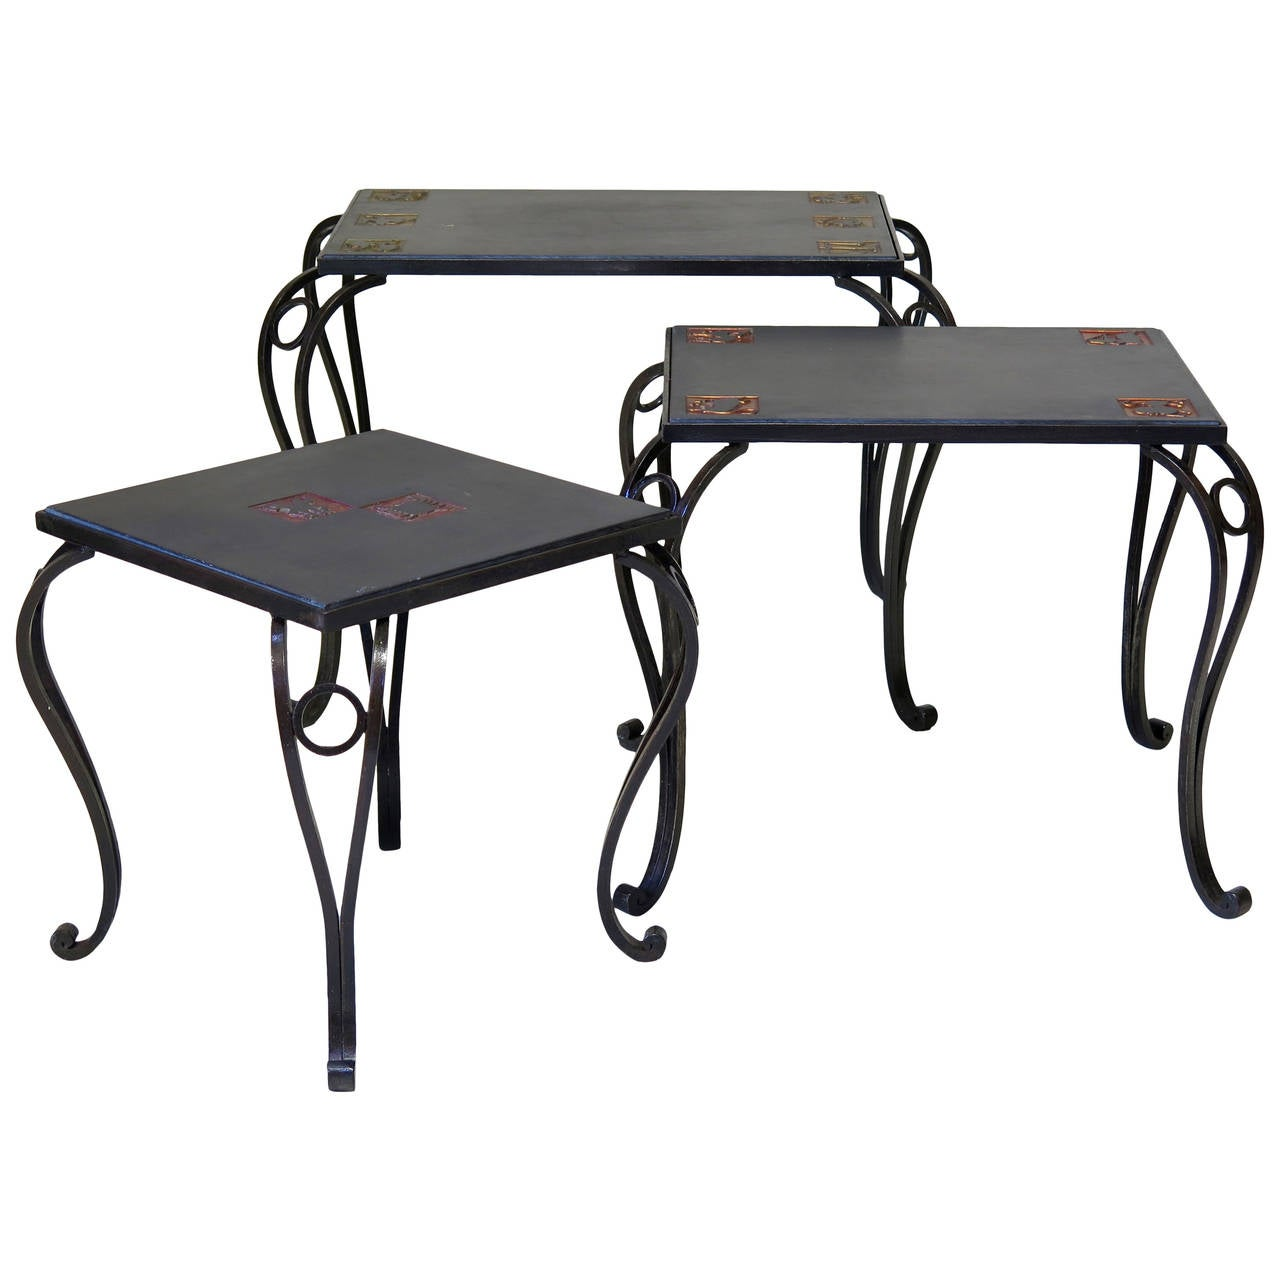 Trio of Iron & Slate Nesting Tables with Zodiac Sign Motif - France, Circa 1950s